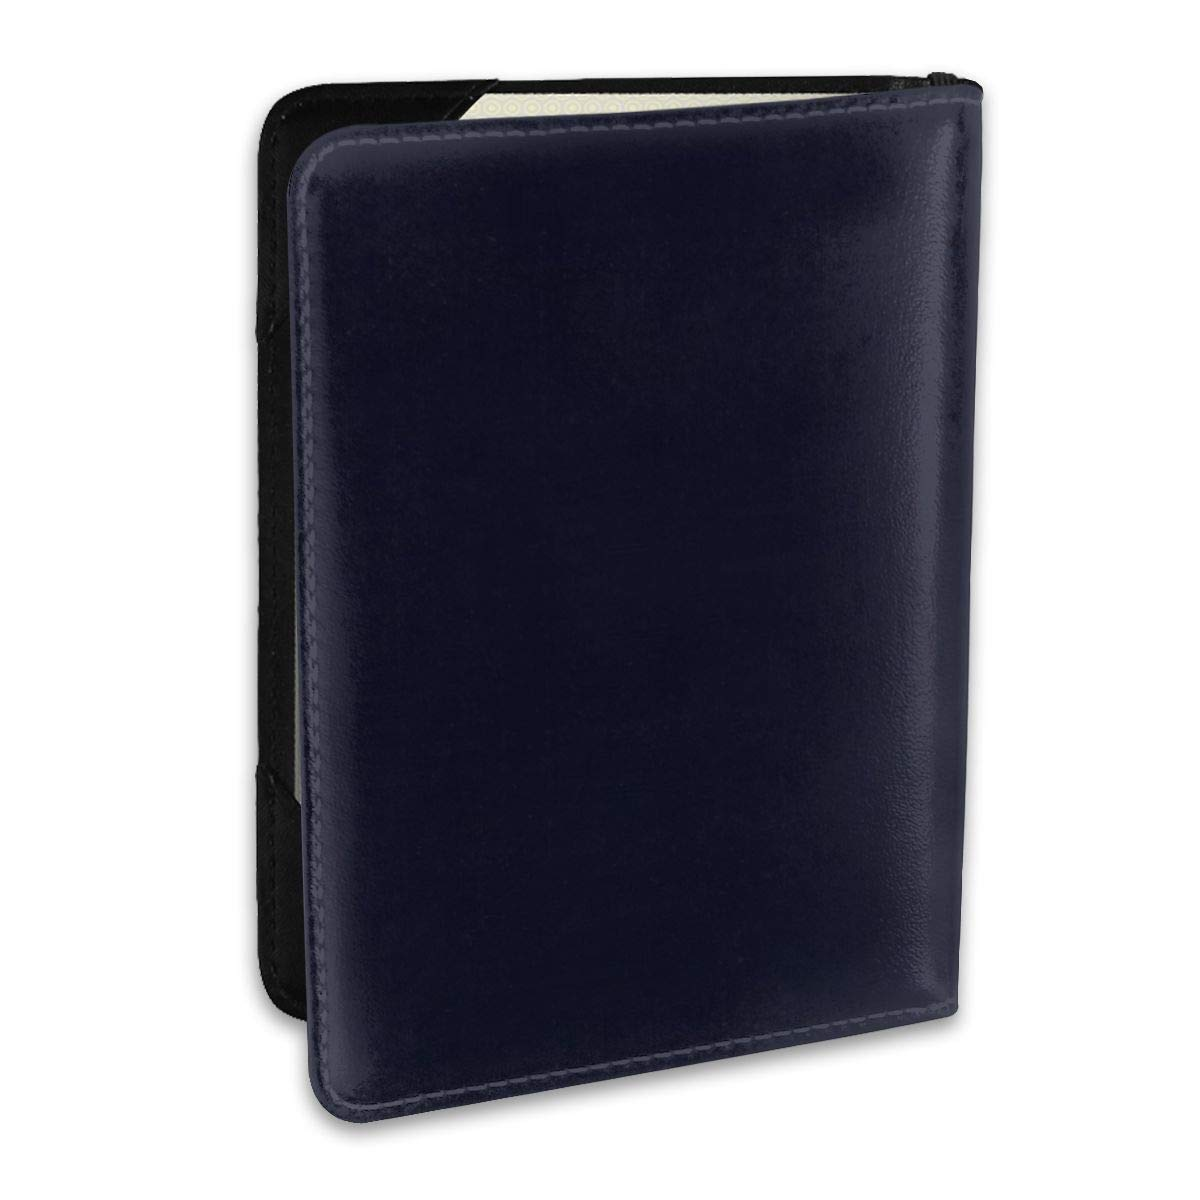 Lit Matchstick Shape Silhouette Fashion Leather Passport Holder Cover Case Travel Wallet 6.5 In